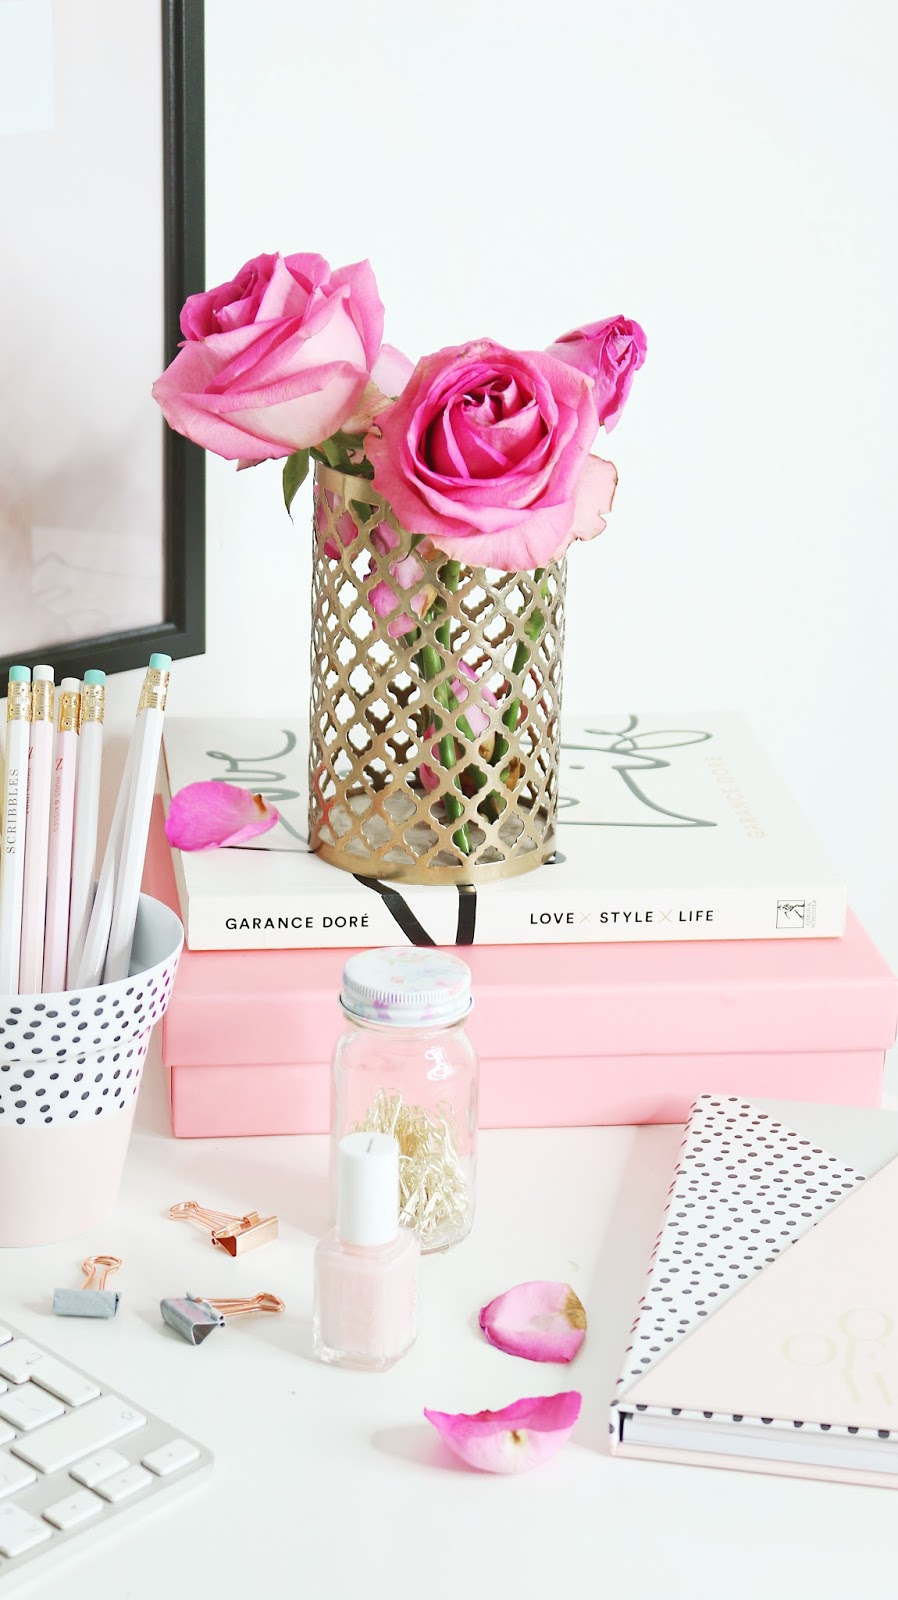 Blogging, Photography, Lifestyle, Photography advice, blog photo inspiration, blog photo advice, how to take better blog photos, flatlays,  how to take blog photos on your own,